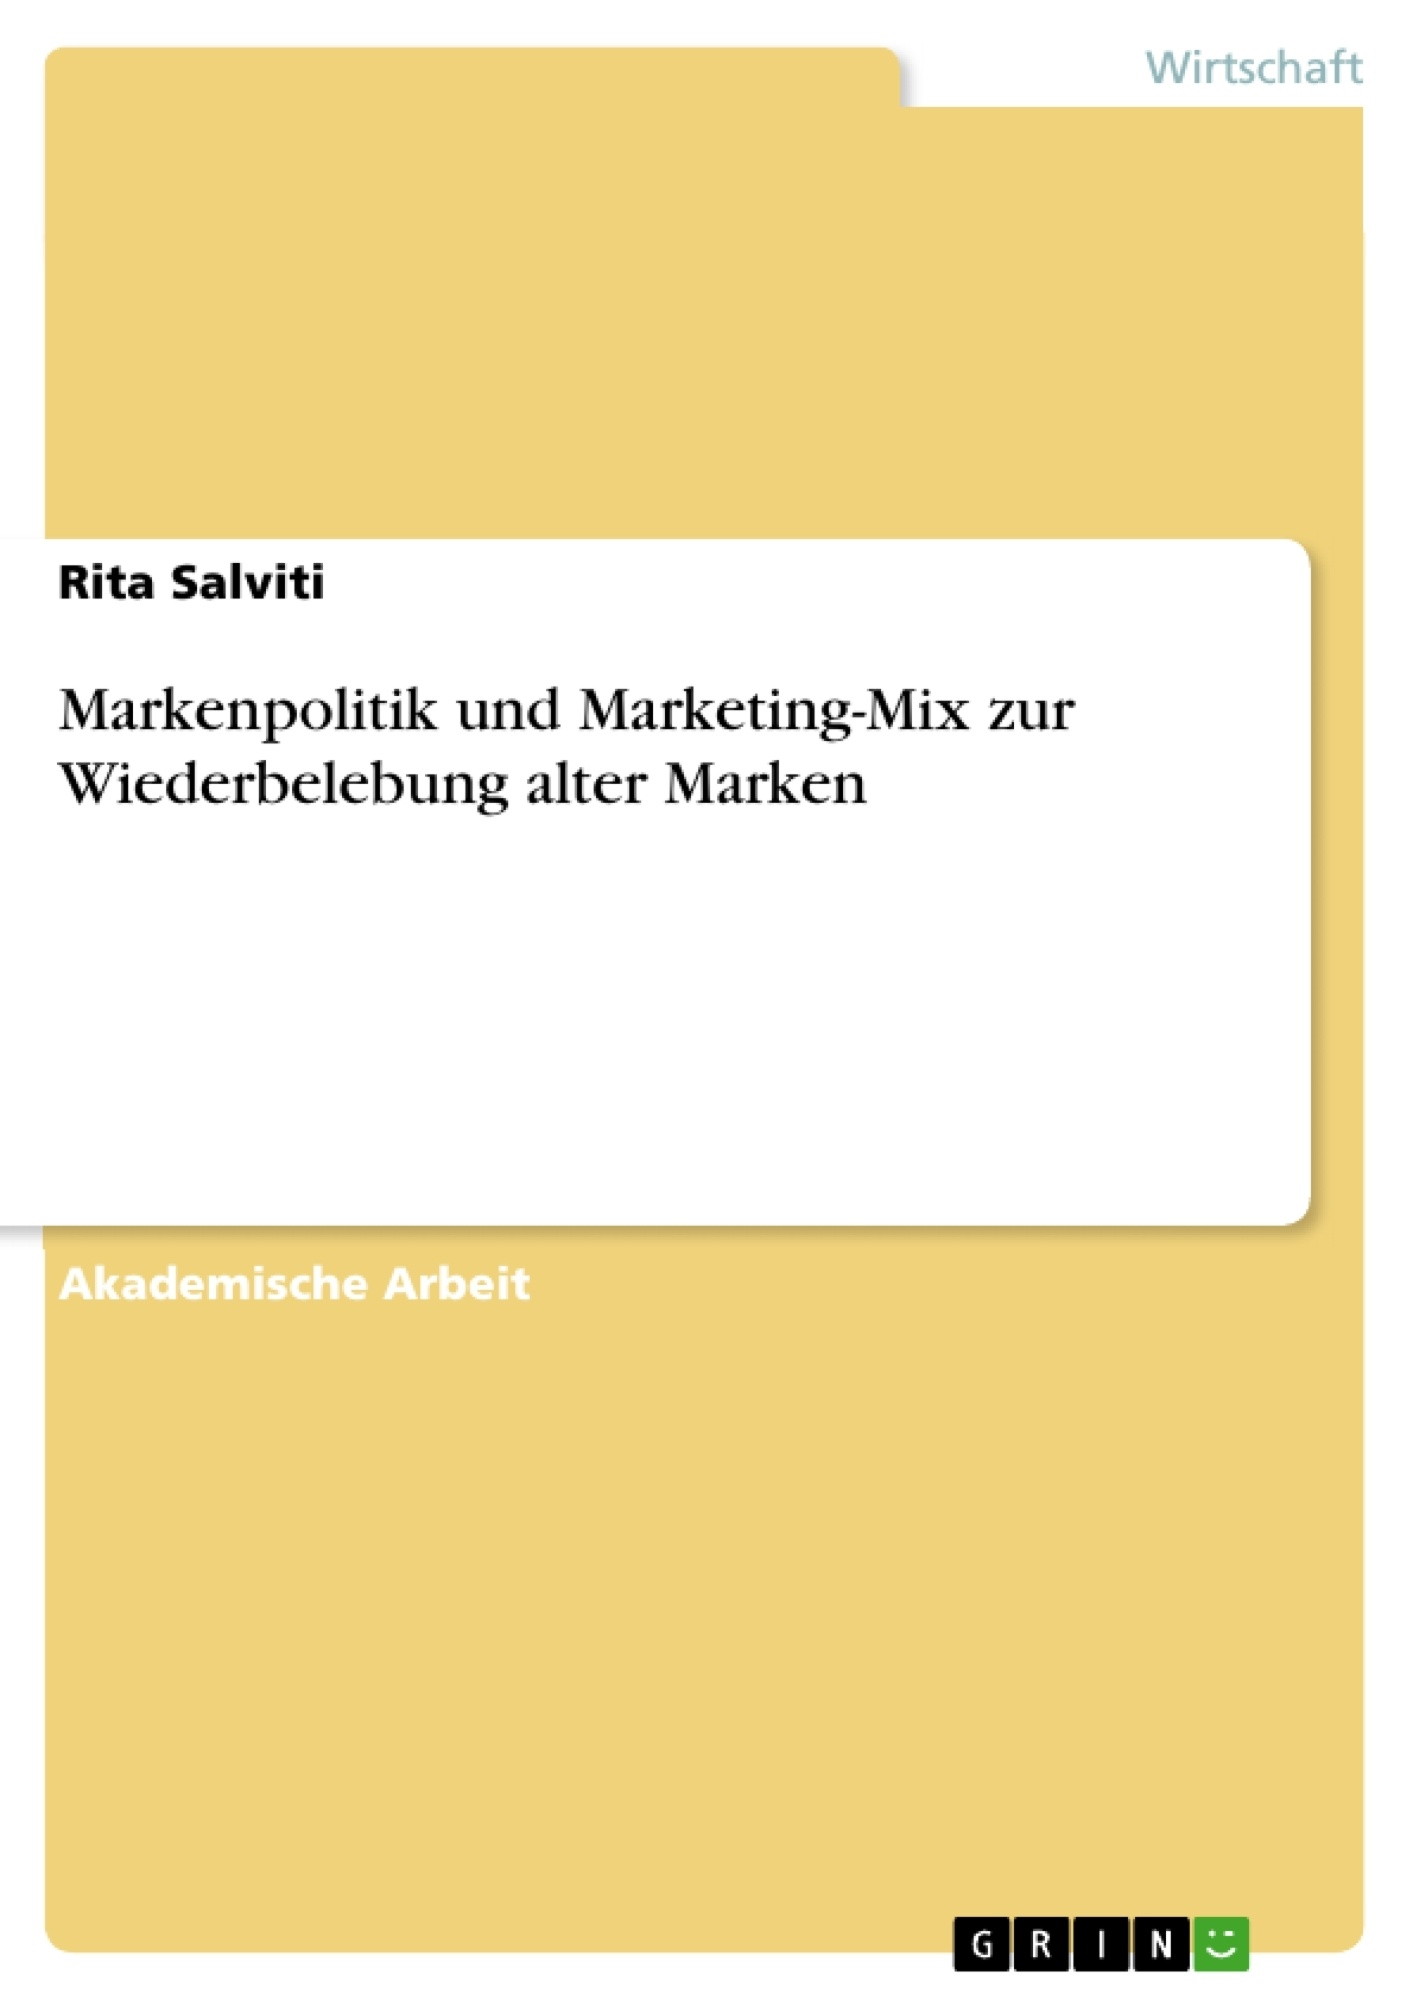 Titel: Markenpolitik und Marketing-Mix zur Wiederbelebung alter Marken